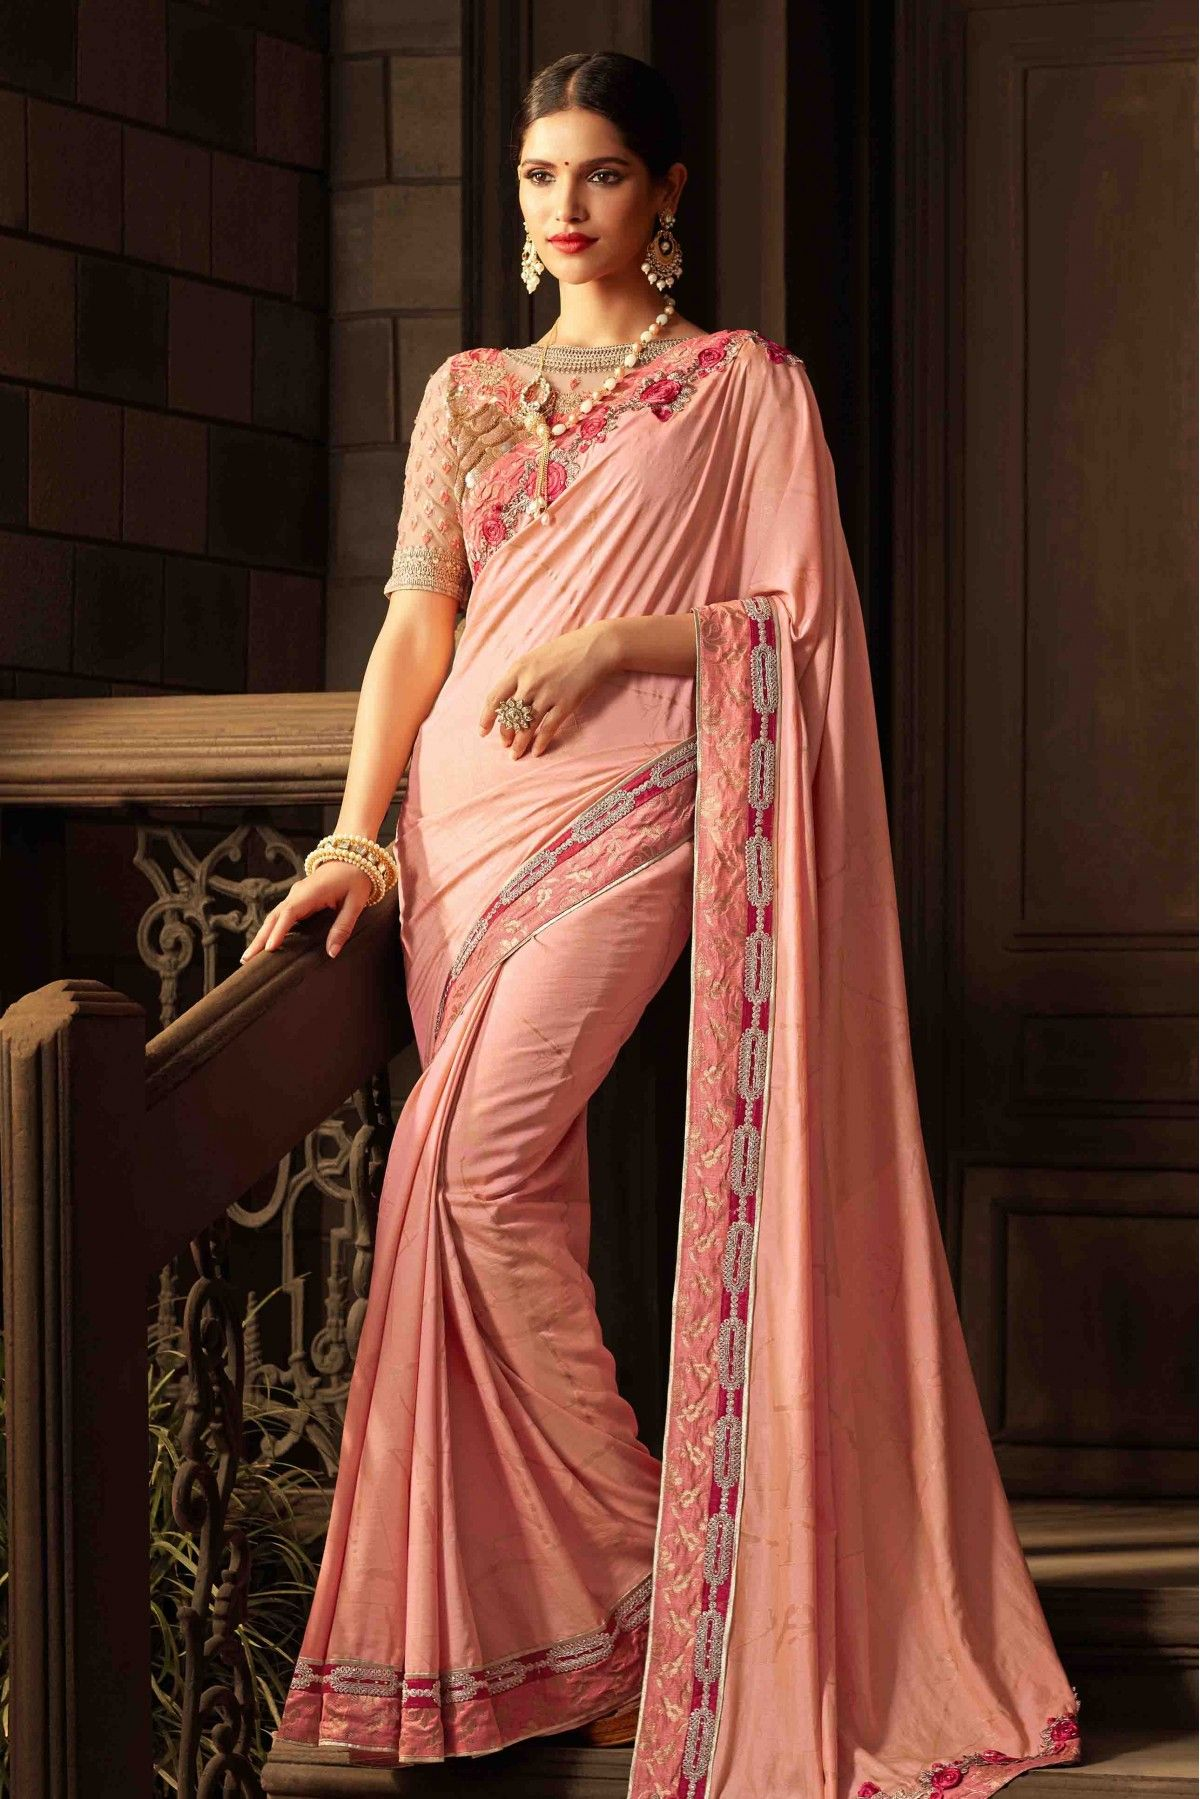 b395f6e986 Buy Sana Silk Saree In Baby Pink Colour for women @ ninecolours.com.  Worldwide Free Shipping Available!